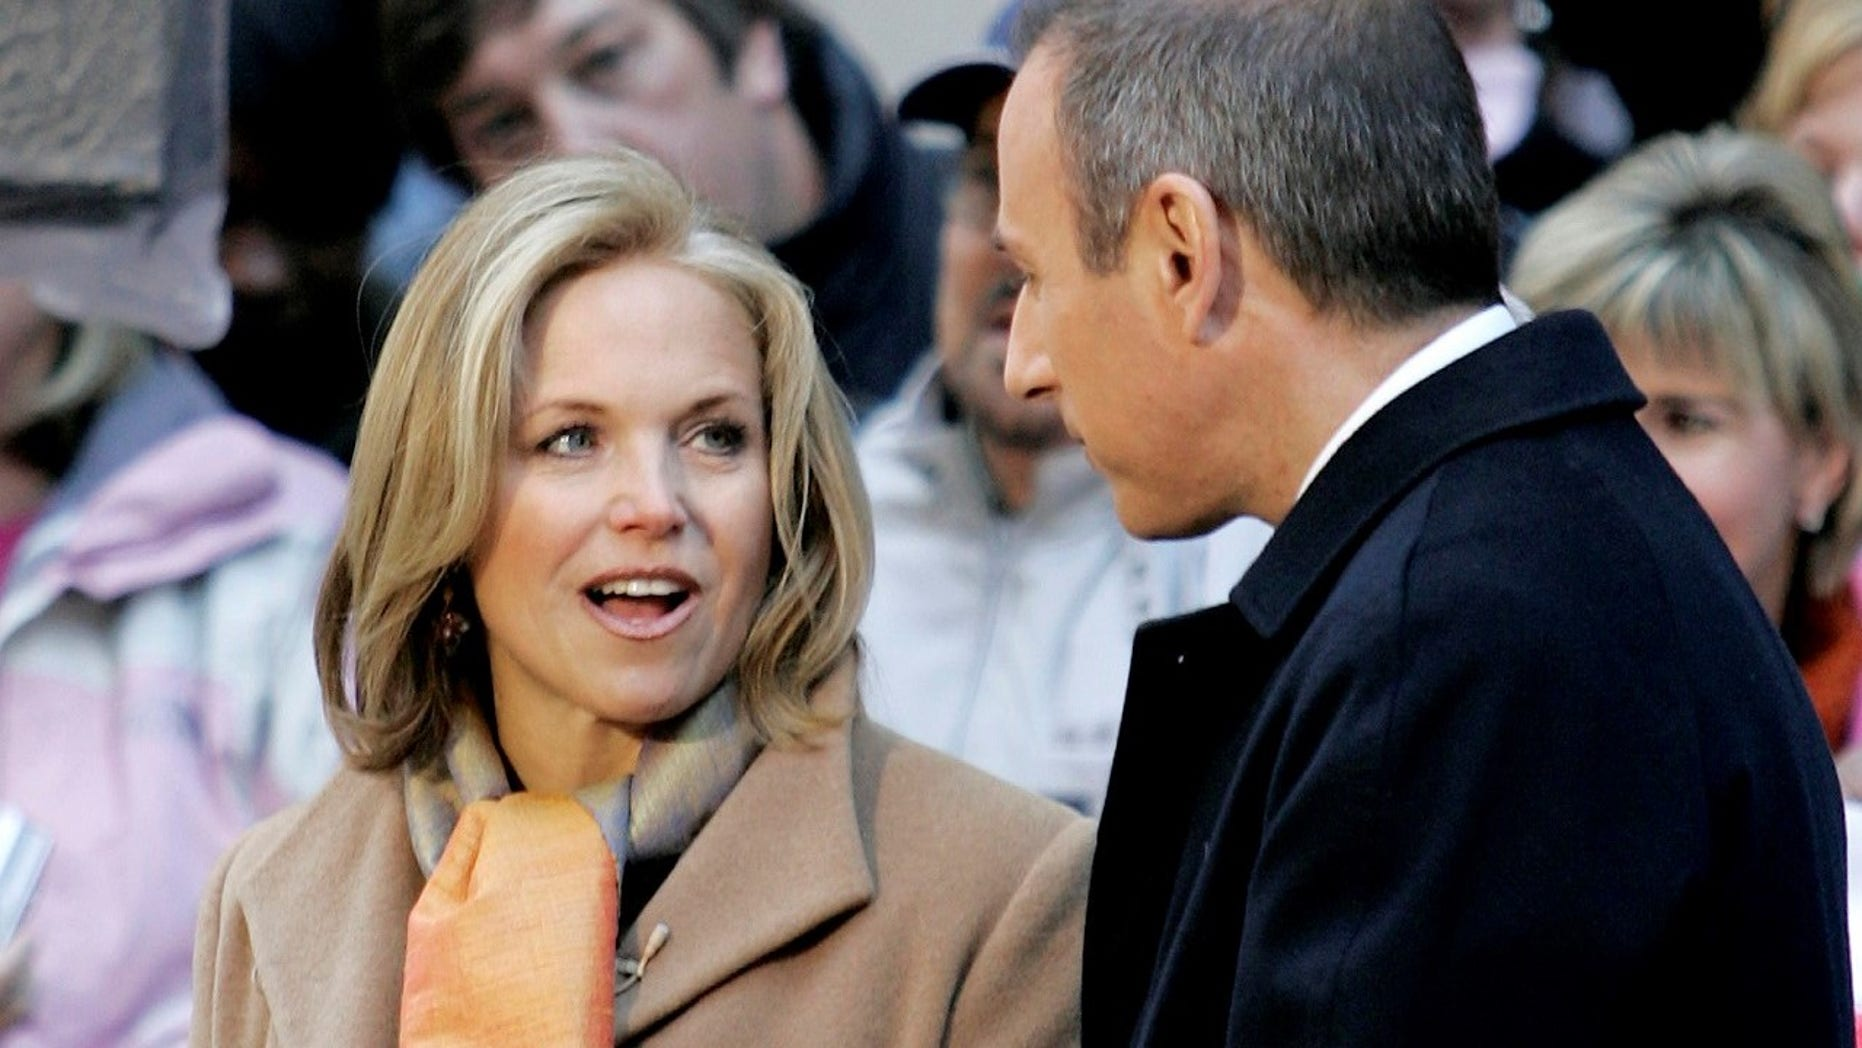 """Katie Couric said in a 2012 interview Matt Lauer pinched her """"on the ass a lot."""""""